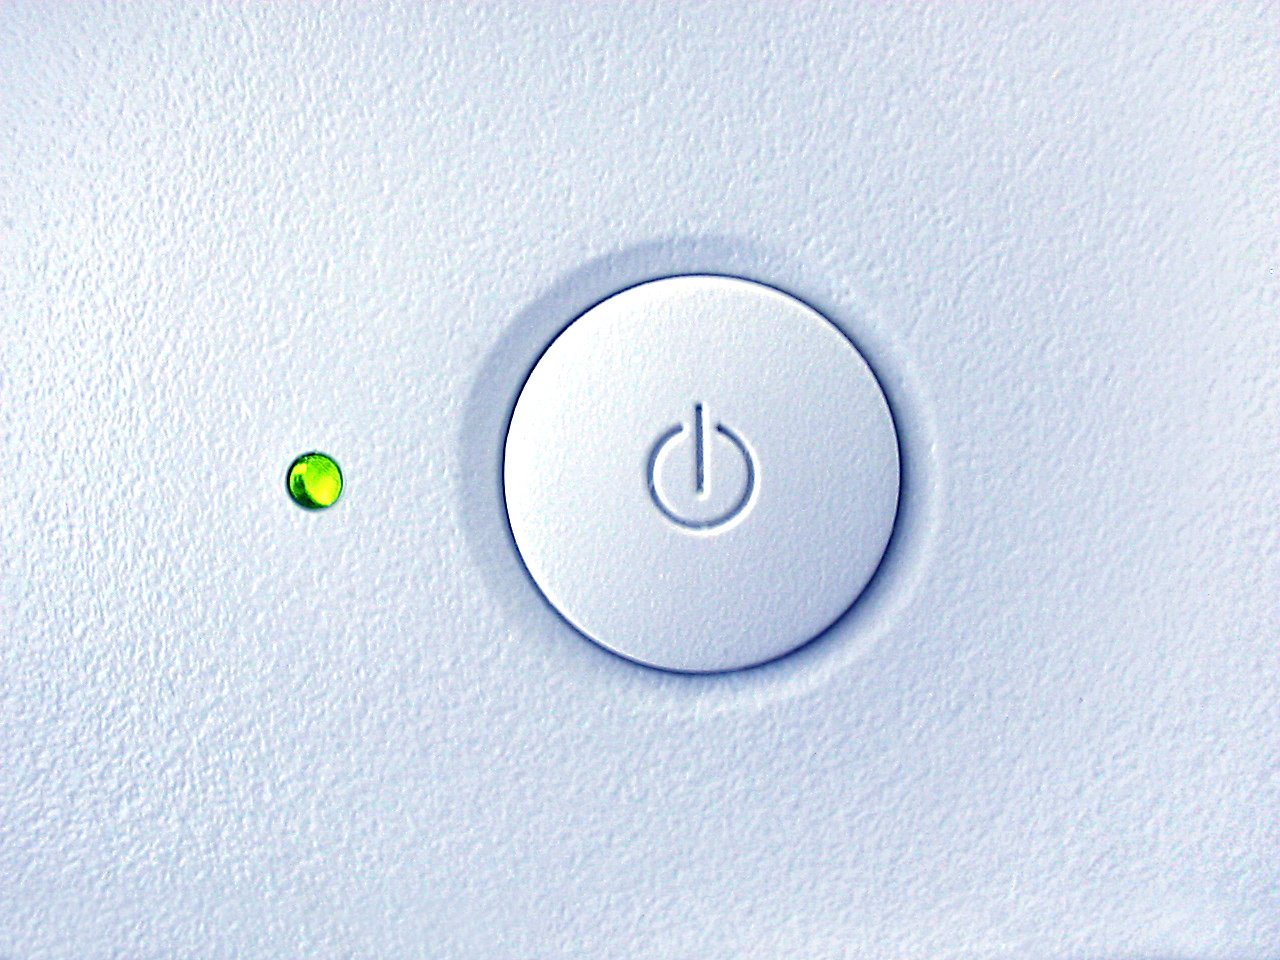 Monitor Power Button : Free monitor power button stock photo freeimages